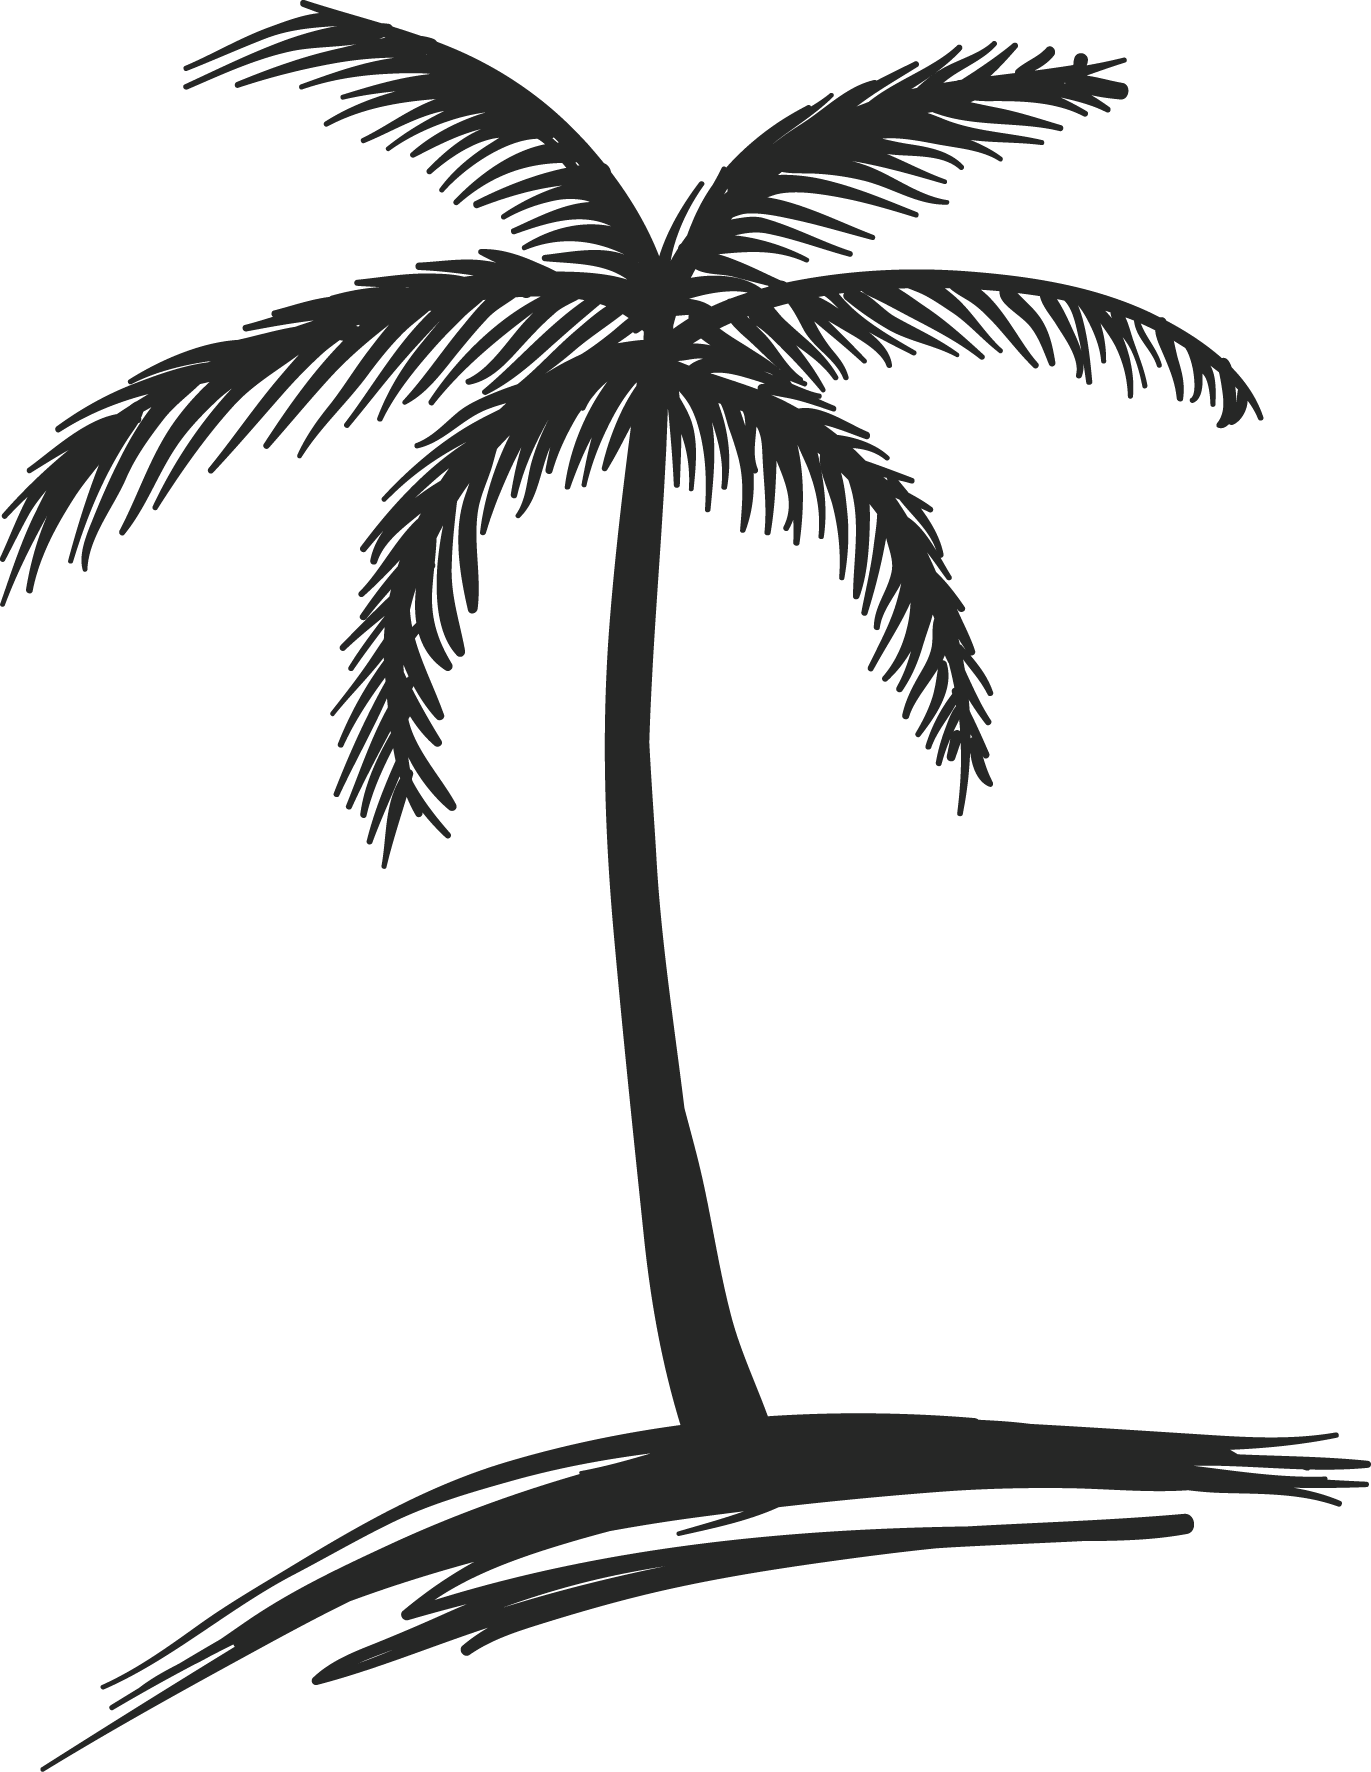 Coconut tree clipart black and white picture 28+ Collection of Coconut Tree Drawing Black | High quality, free ... picture